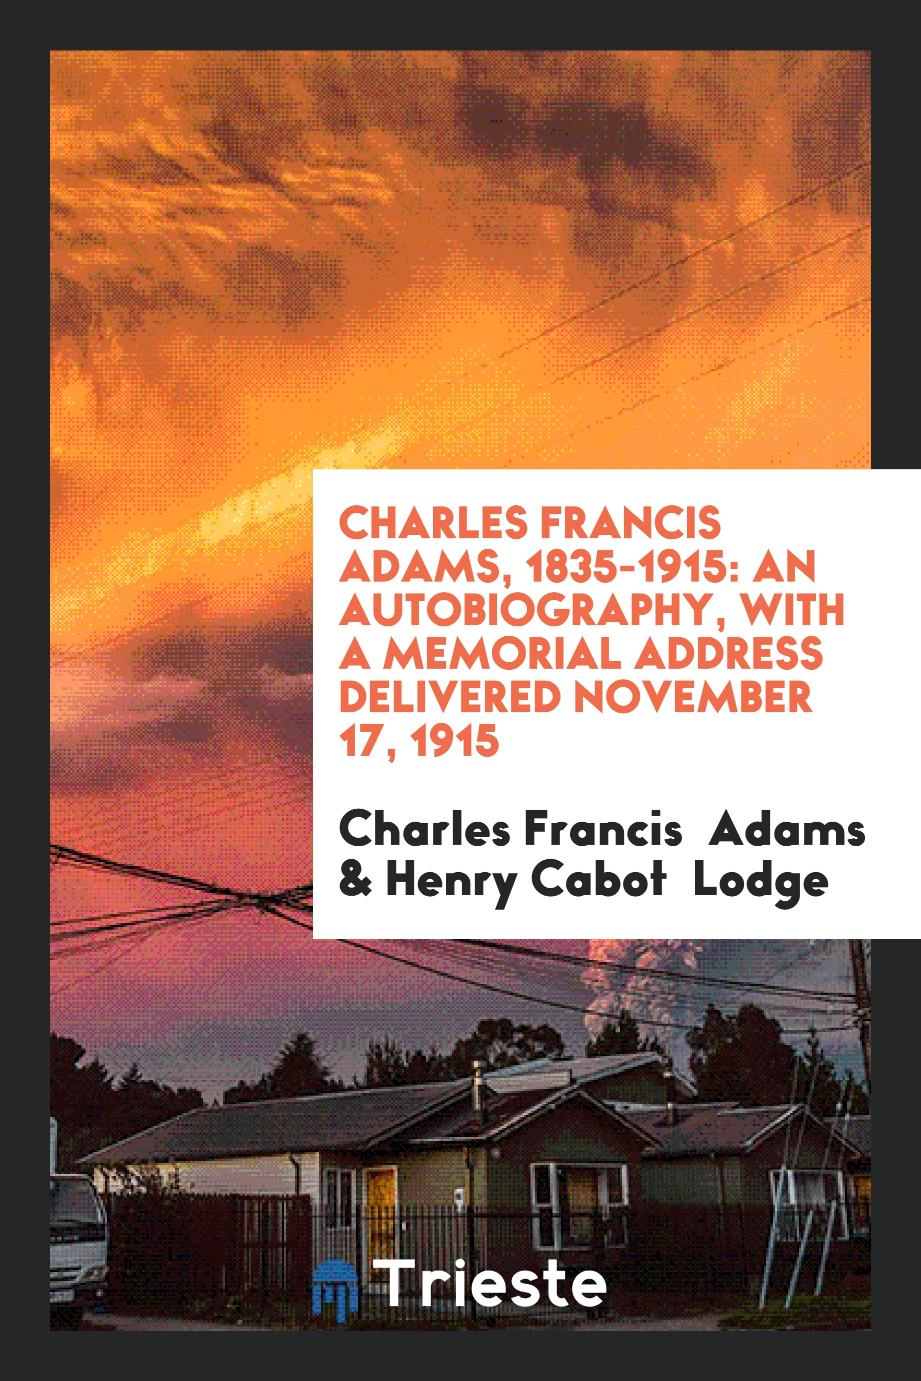 Charles Francis Adams, 1835-1915: An Autobiography, with a Memorial address delivered November 17, 1915